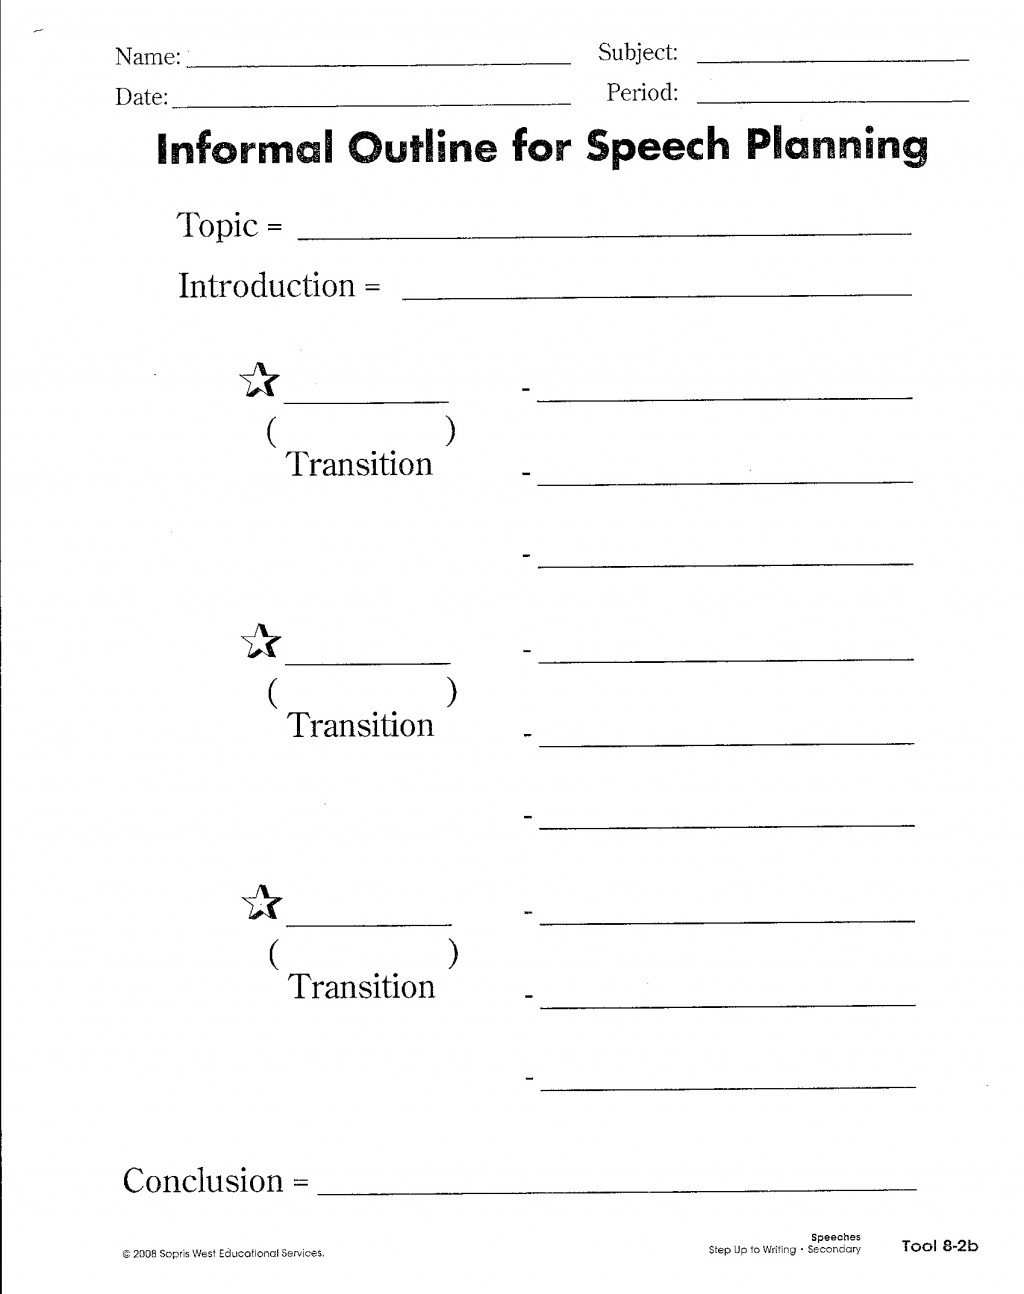 019 Research Paper College Outline Apa Format Suw Planning Your Speech With An Informal Impressive Large